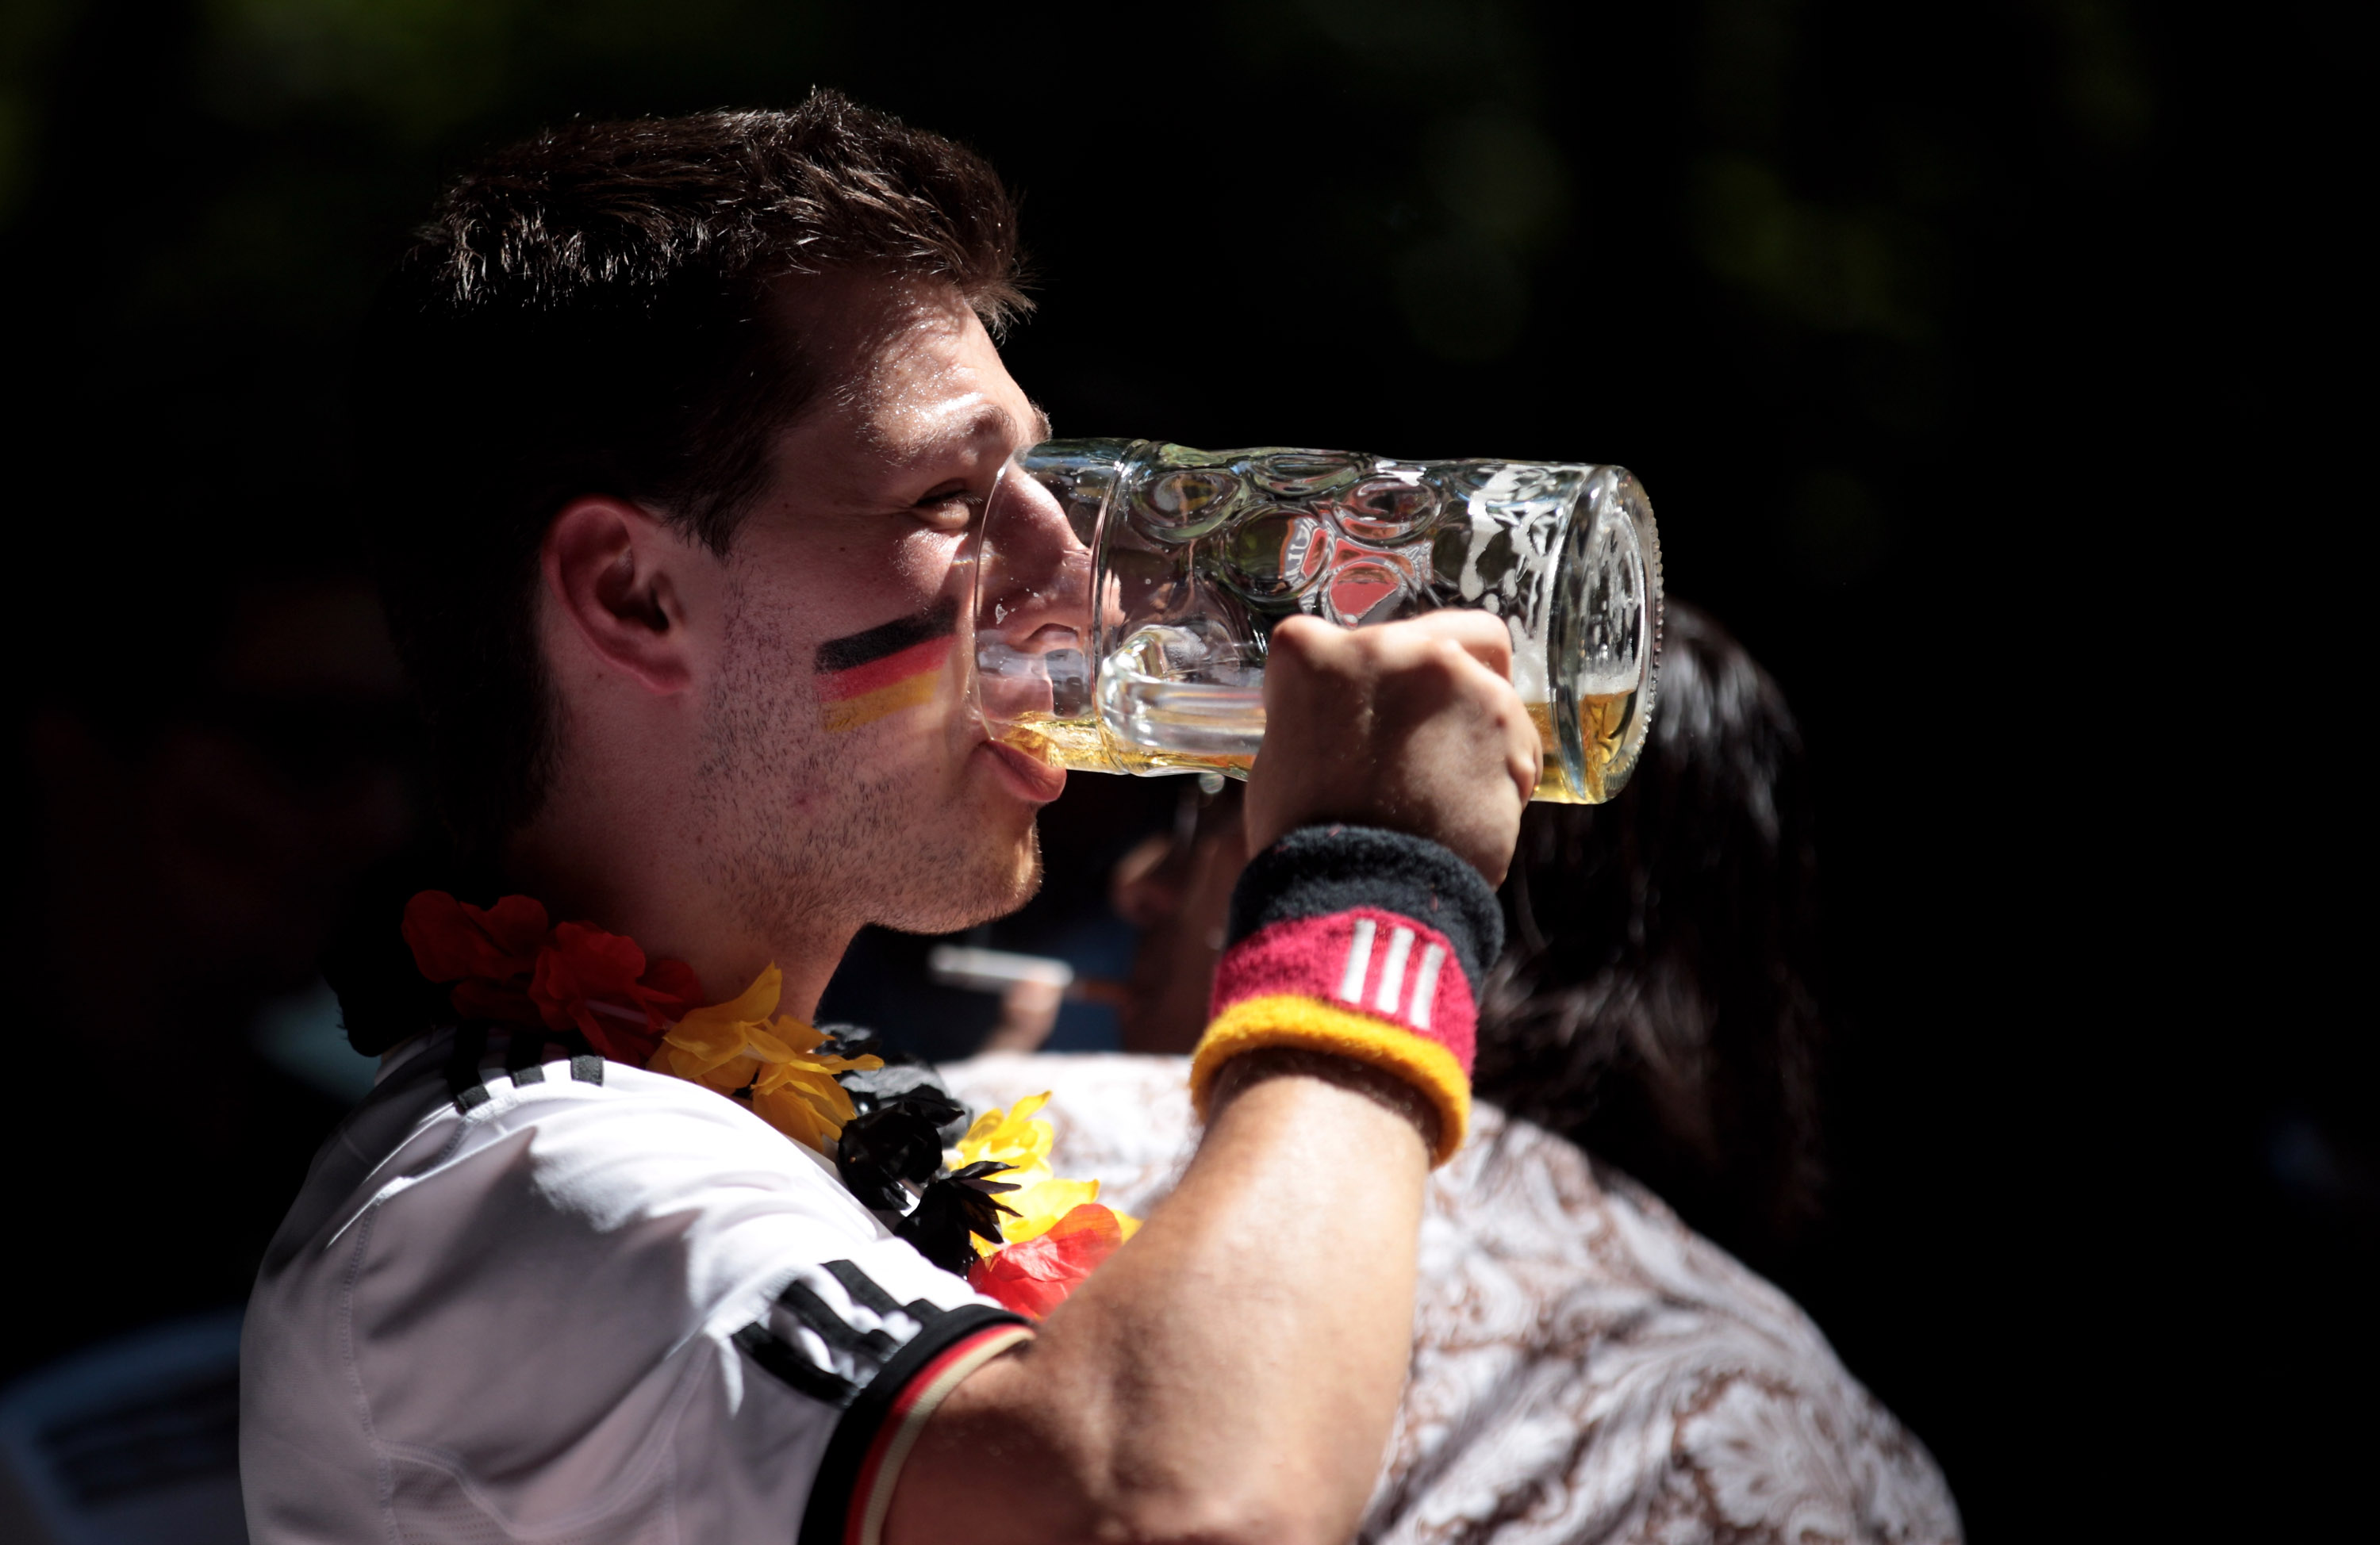 MUNICH - JULY 03:  A supporter of the German football team drinks a beer as he watches the 2010 FIFA World Cup quarter final match between Germany and Argentina at a beer garden on July 3, 2010 in Munich, Germany.  (Photo by Miguel Villagran/Getty Images)